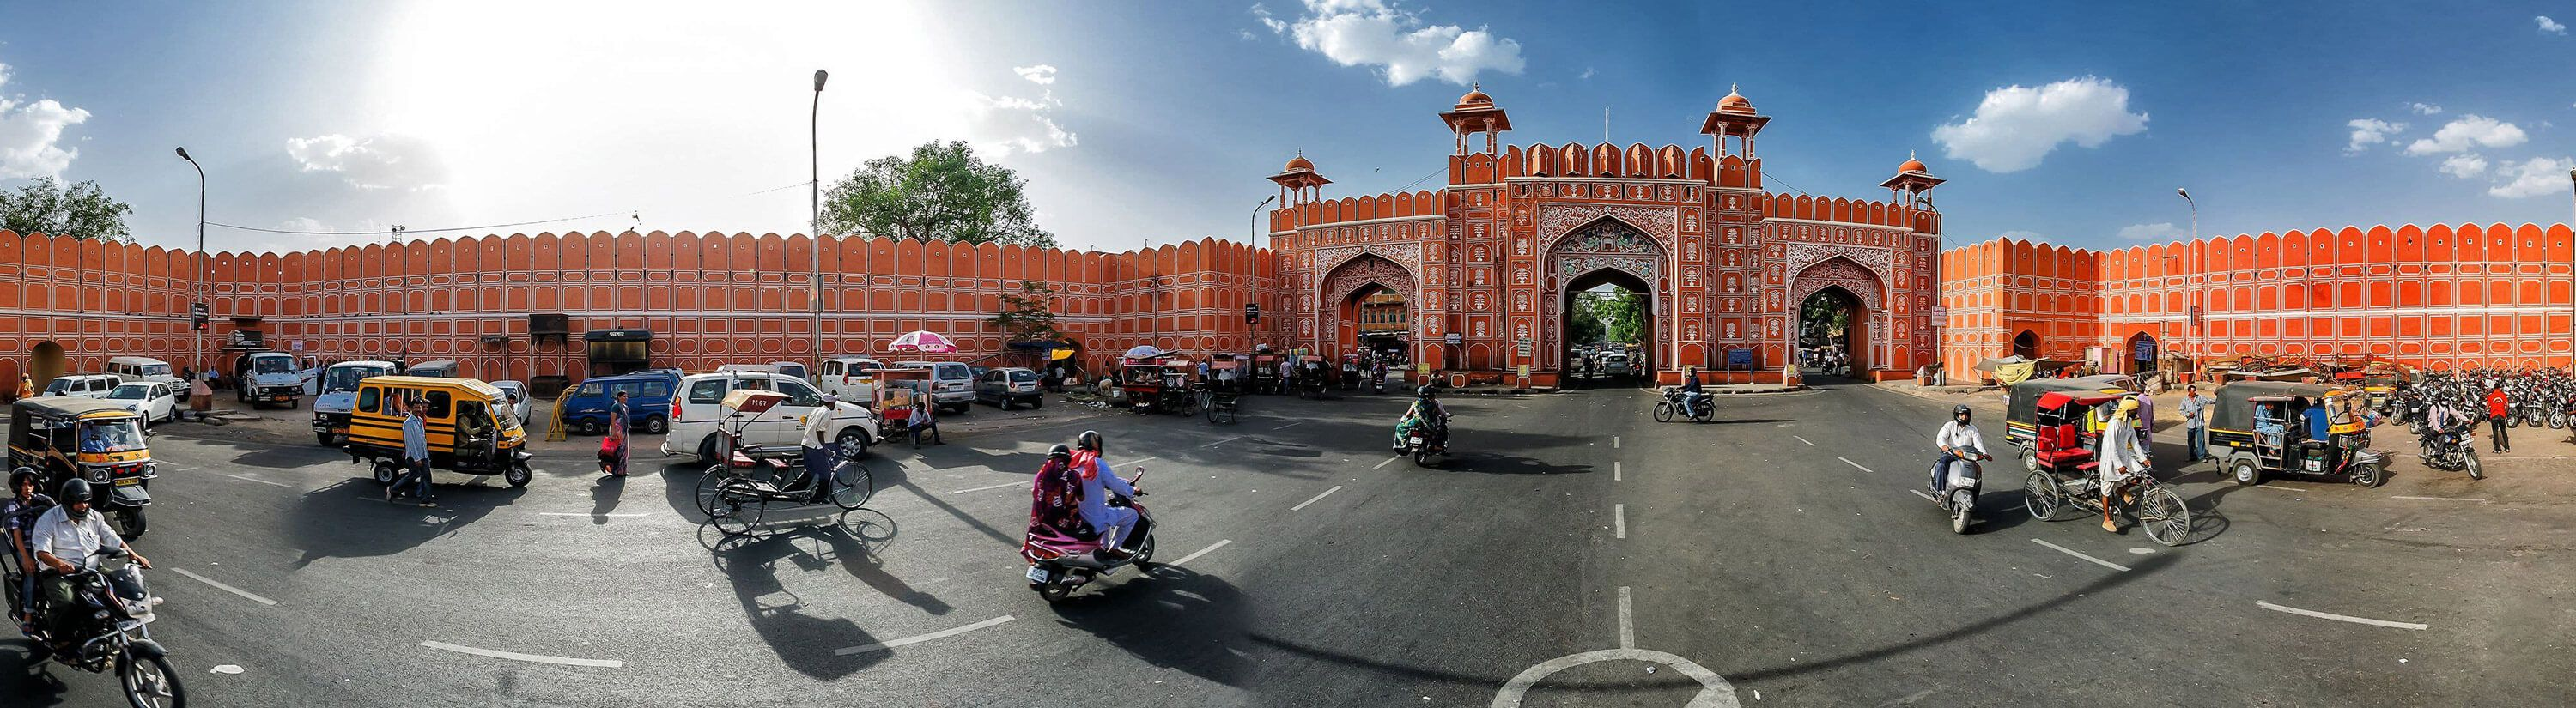 Local Area Gate Pink City